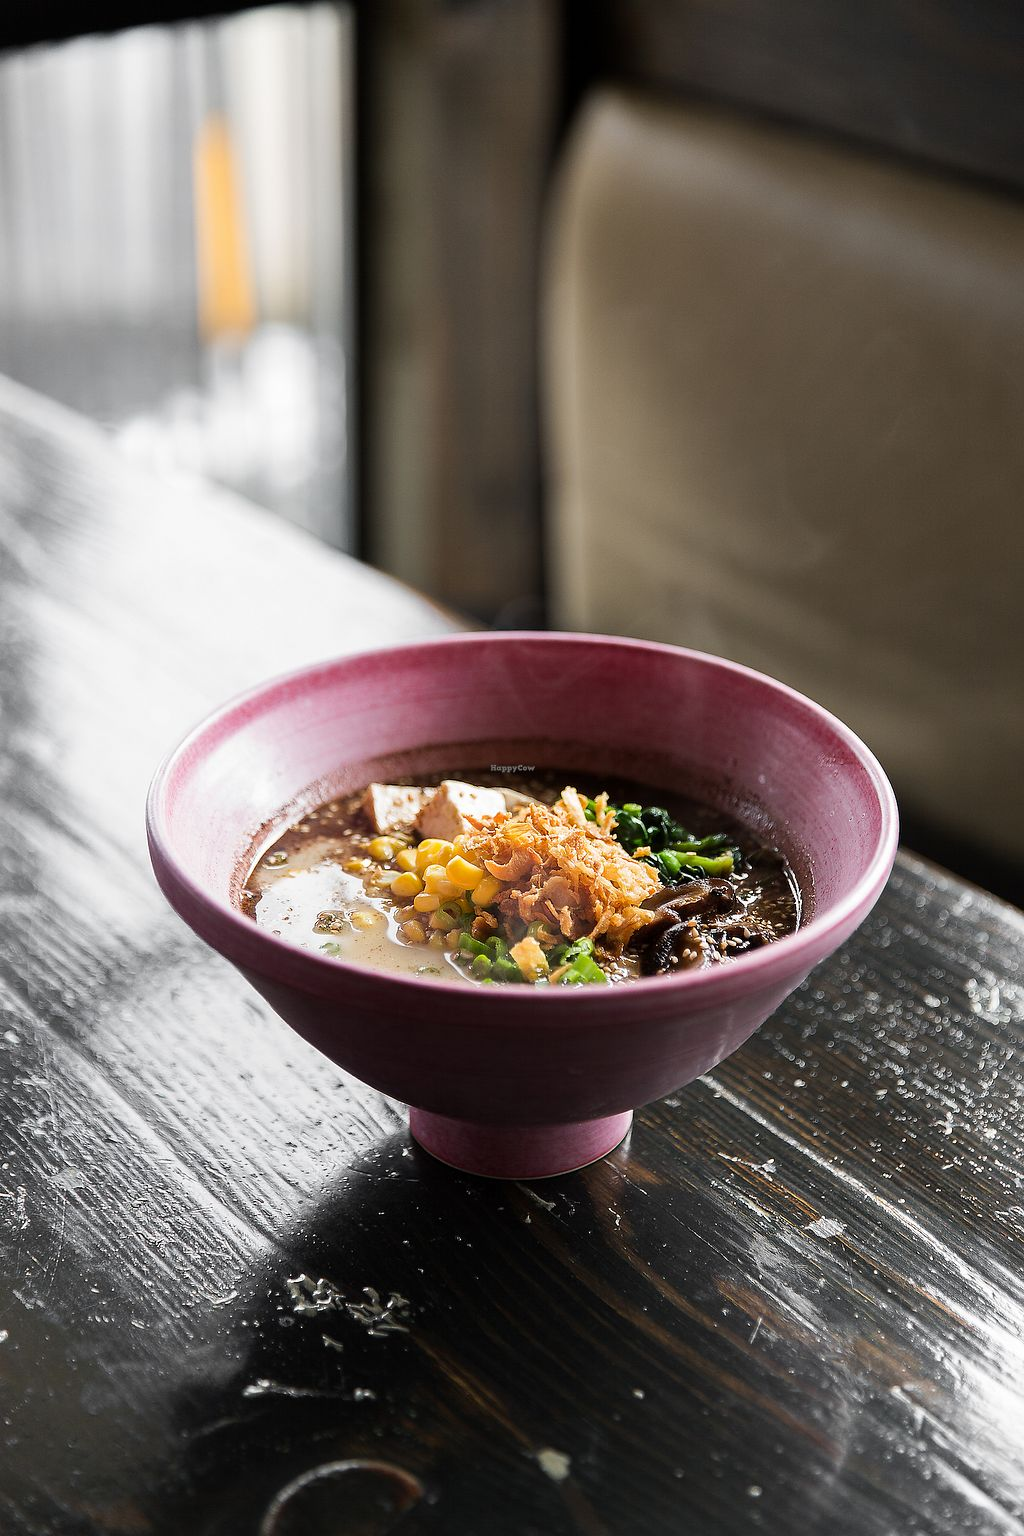 """Photo of Ohyama Ramen  by <a href=""""/members/profile/akikaltenbach"""">akikaltenbach</a> <br/>Our signature Creamy Vegan ramen comes with tofu, Shiitake mushrooms, greens, corn, and kale noodles <br/> January 17, 2018  - <a href='/contact/abuse/image/109678/347435'>Report</a>"""